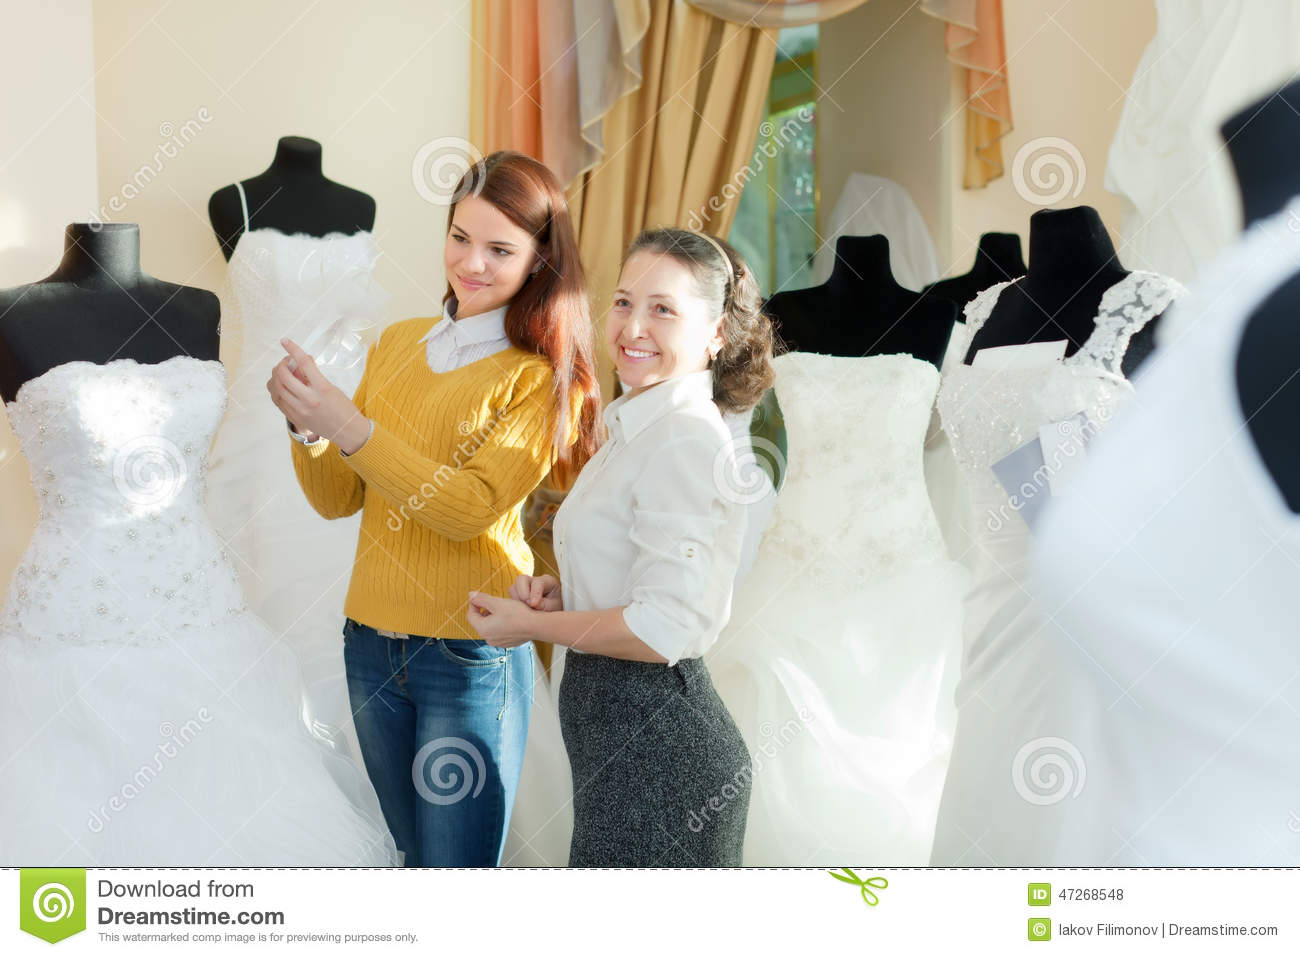 Wedding Photography Consultant: Bride Chooses Bridal Outfit At Wedding Store Stock Photo